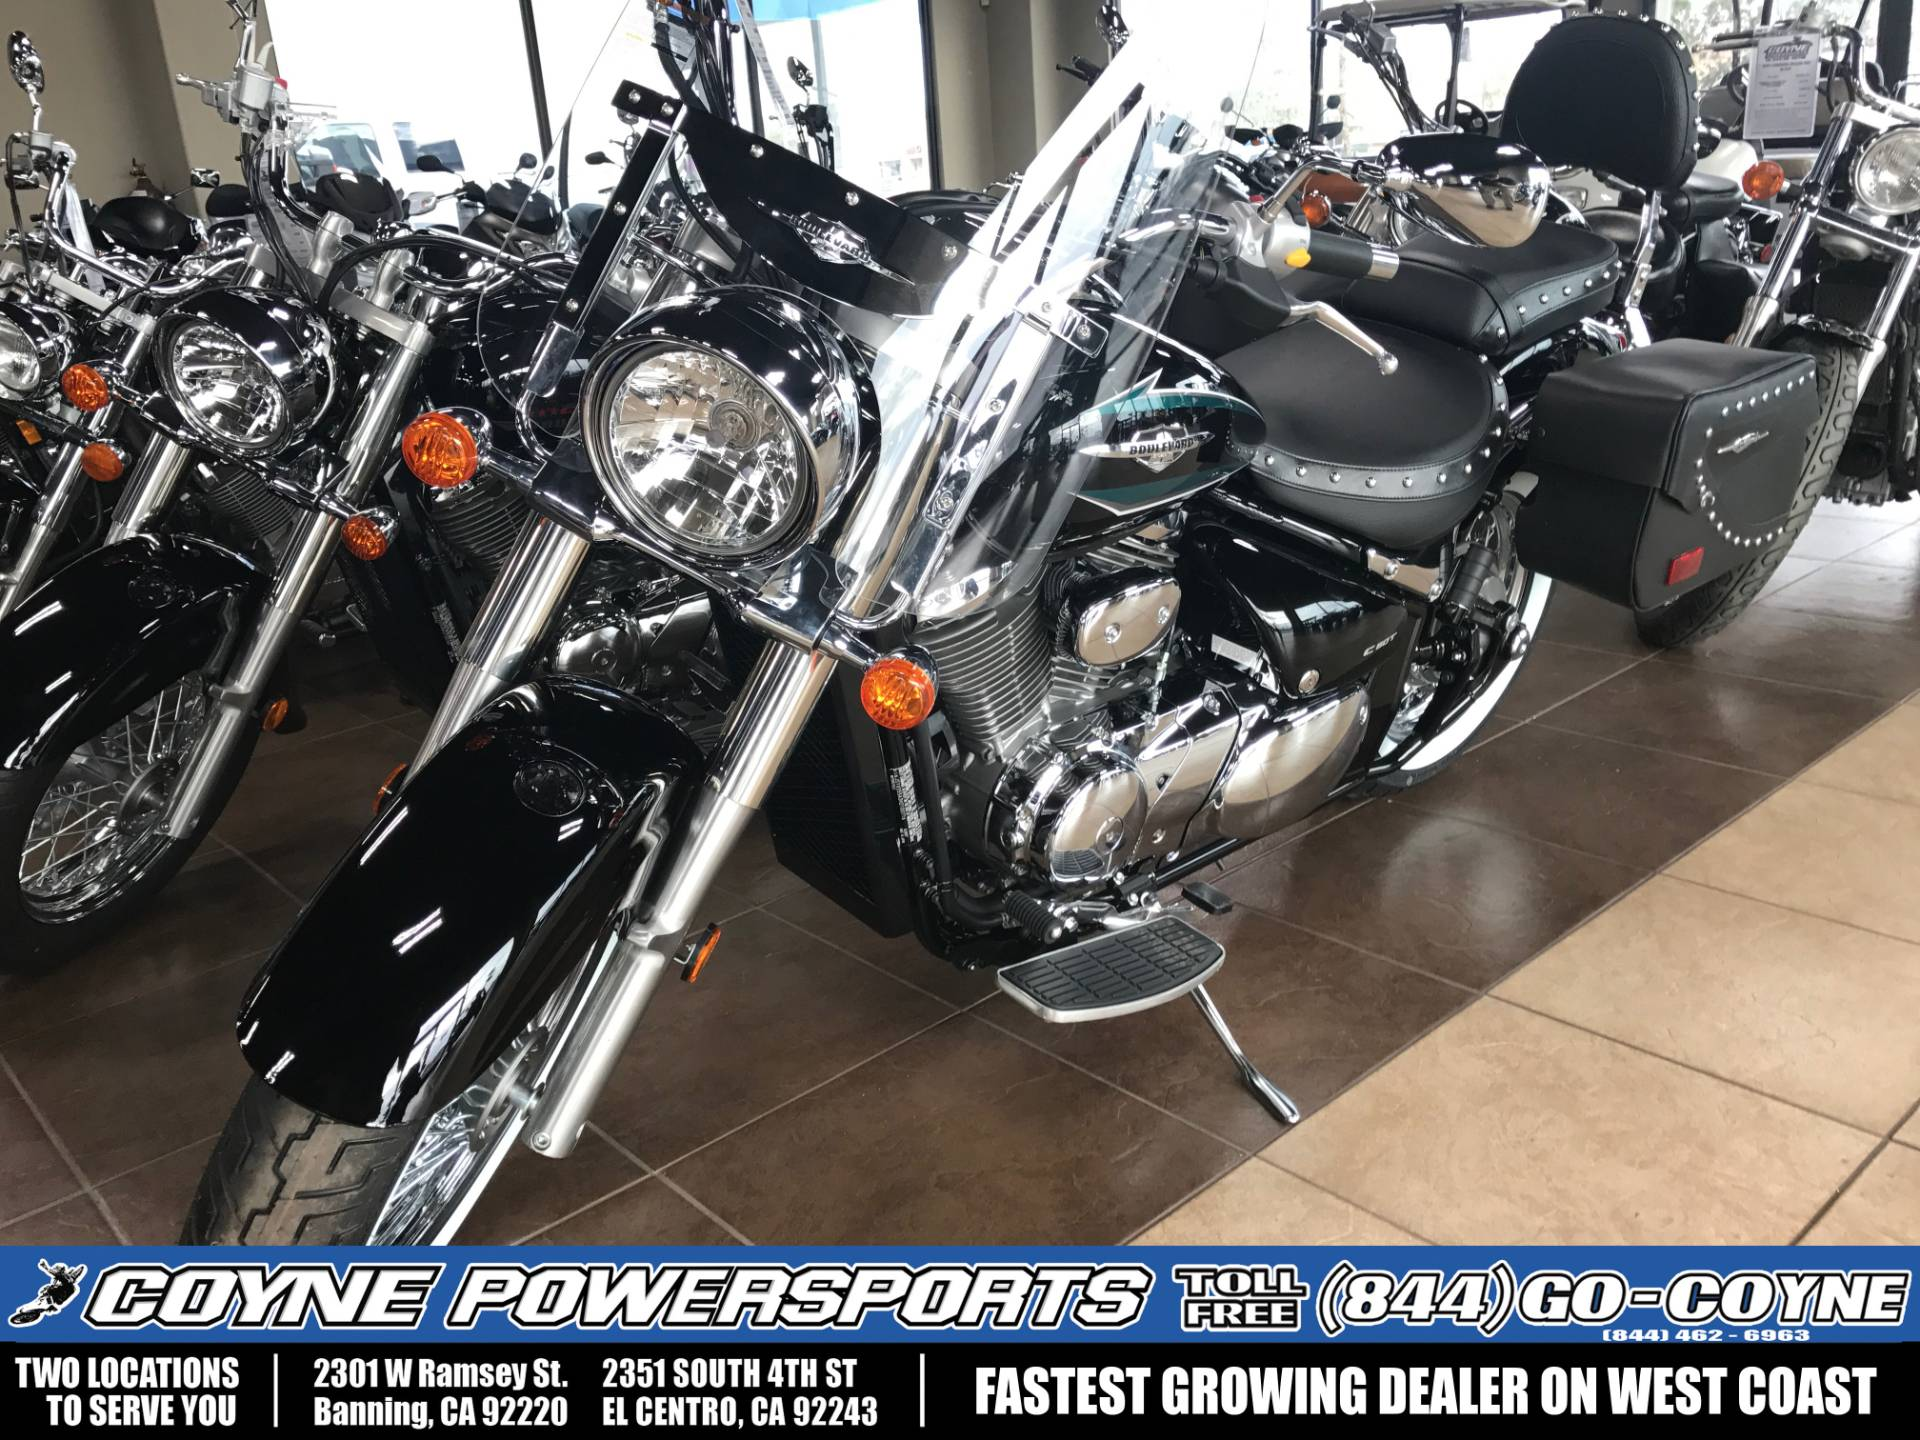 2017 Suzuki Boulevard C50T for sale 23